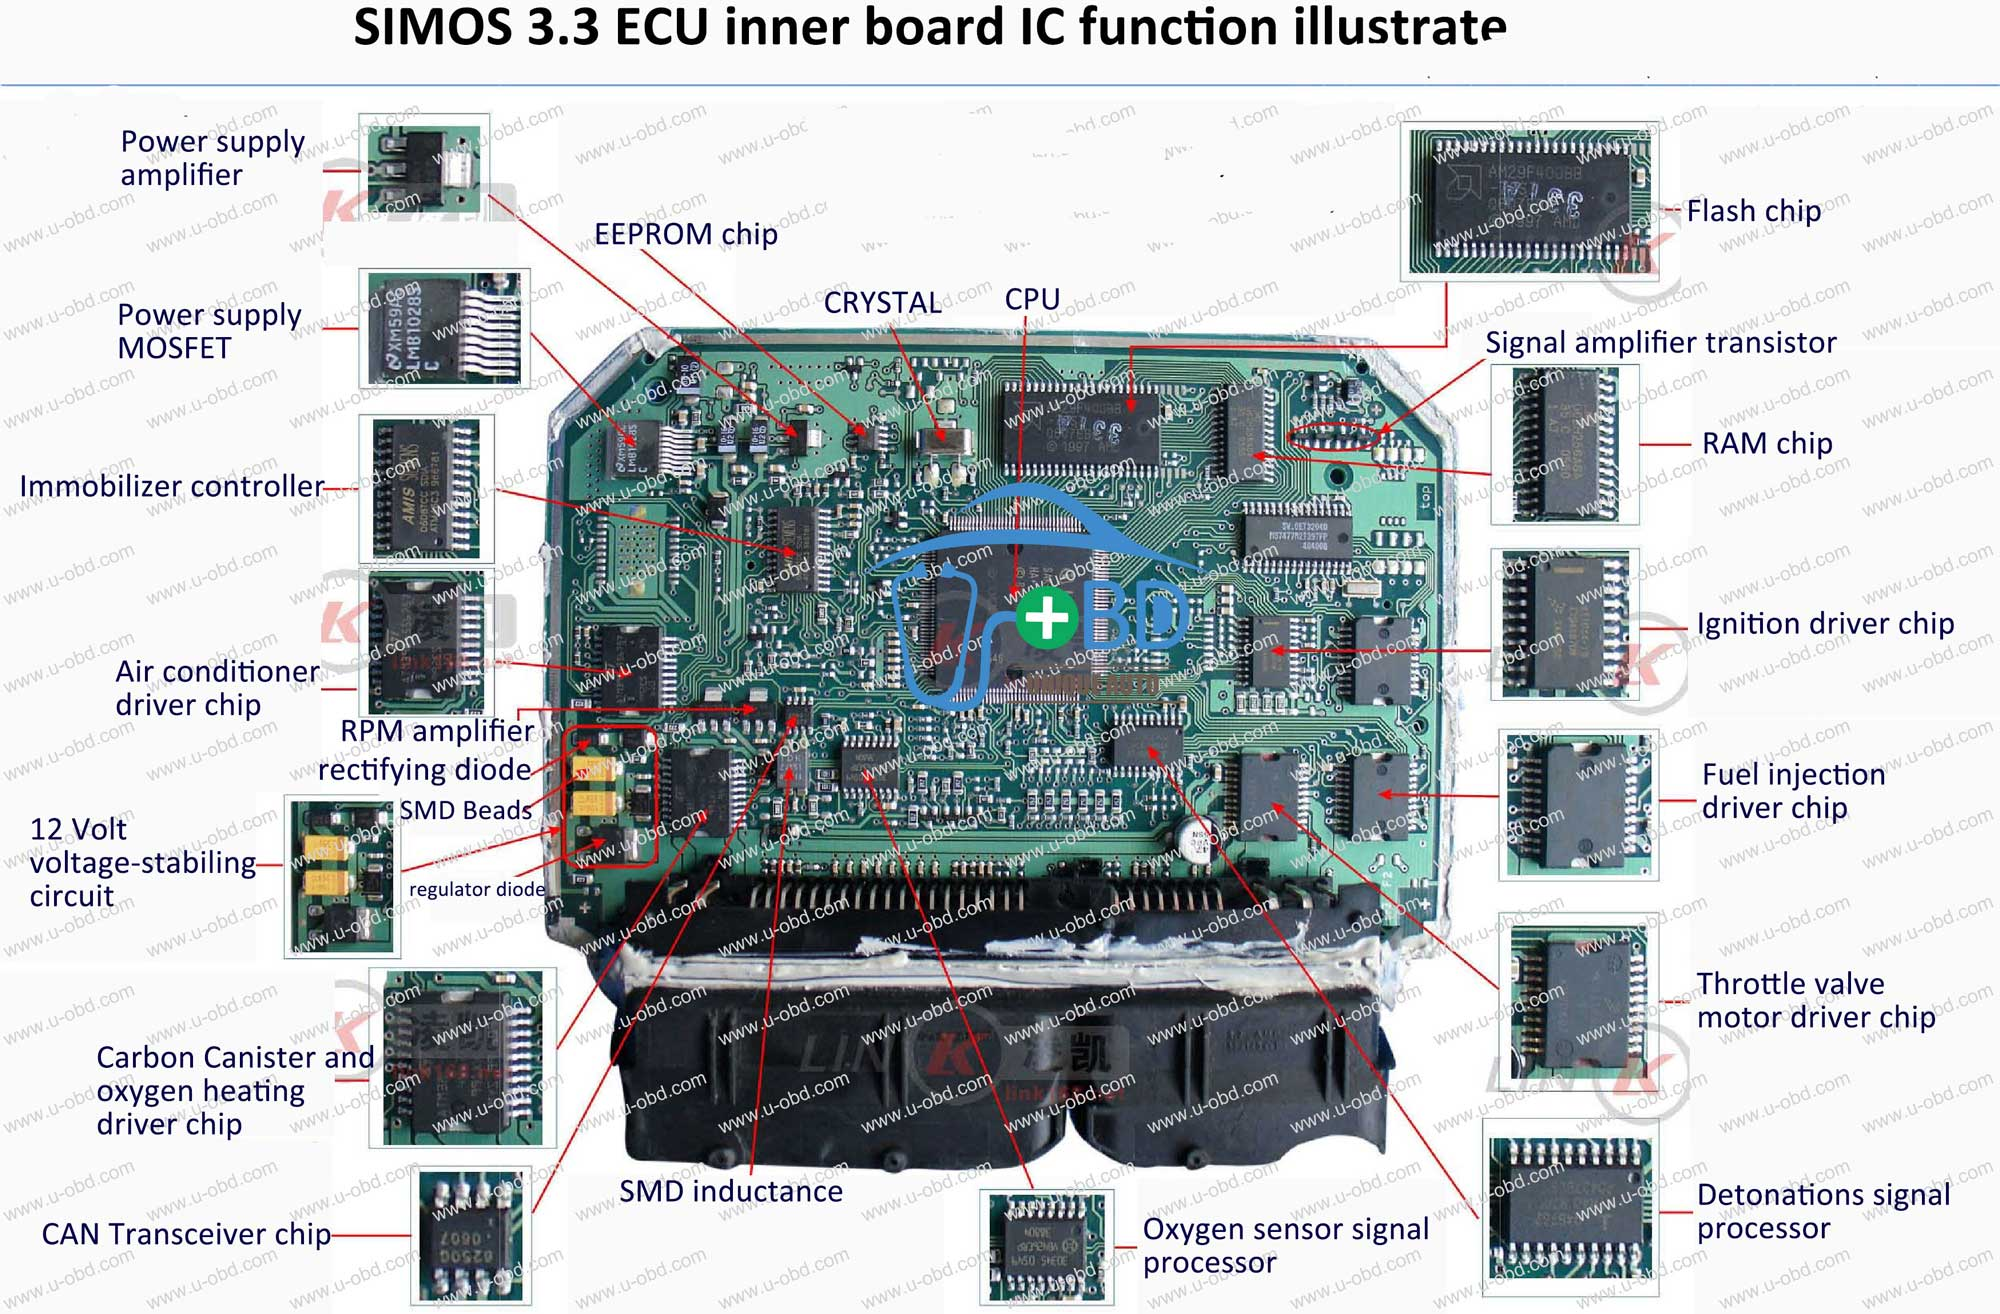 SIMOS-3.3-ECU-inner-board-repair-guide-IC-function-illustrate-for-Volkswagen-Jetta-ATK-engine